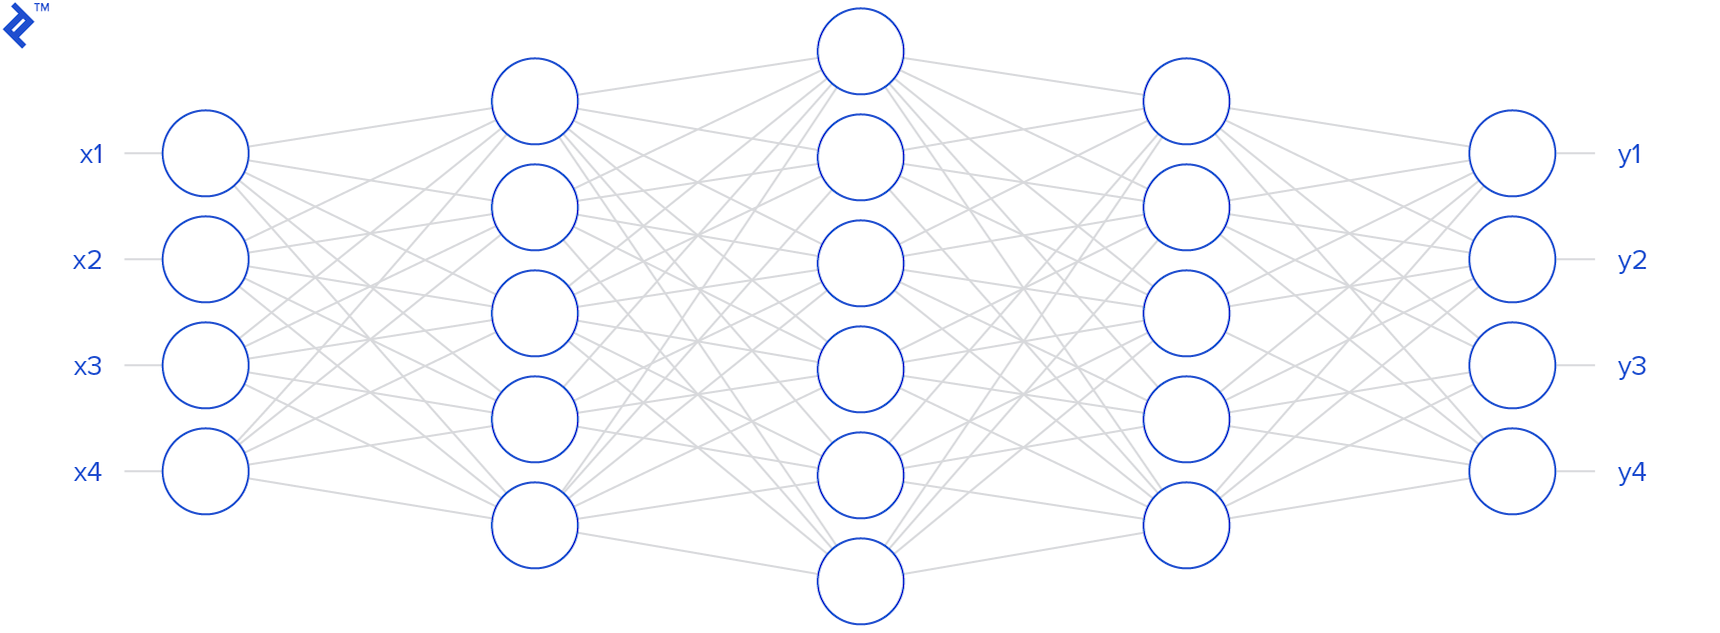 A neural network diagram